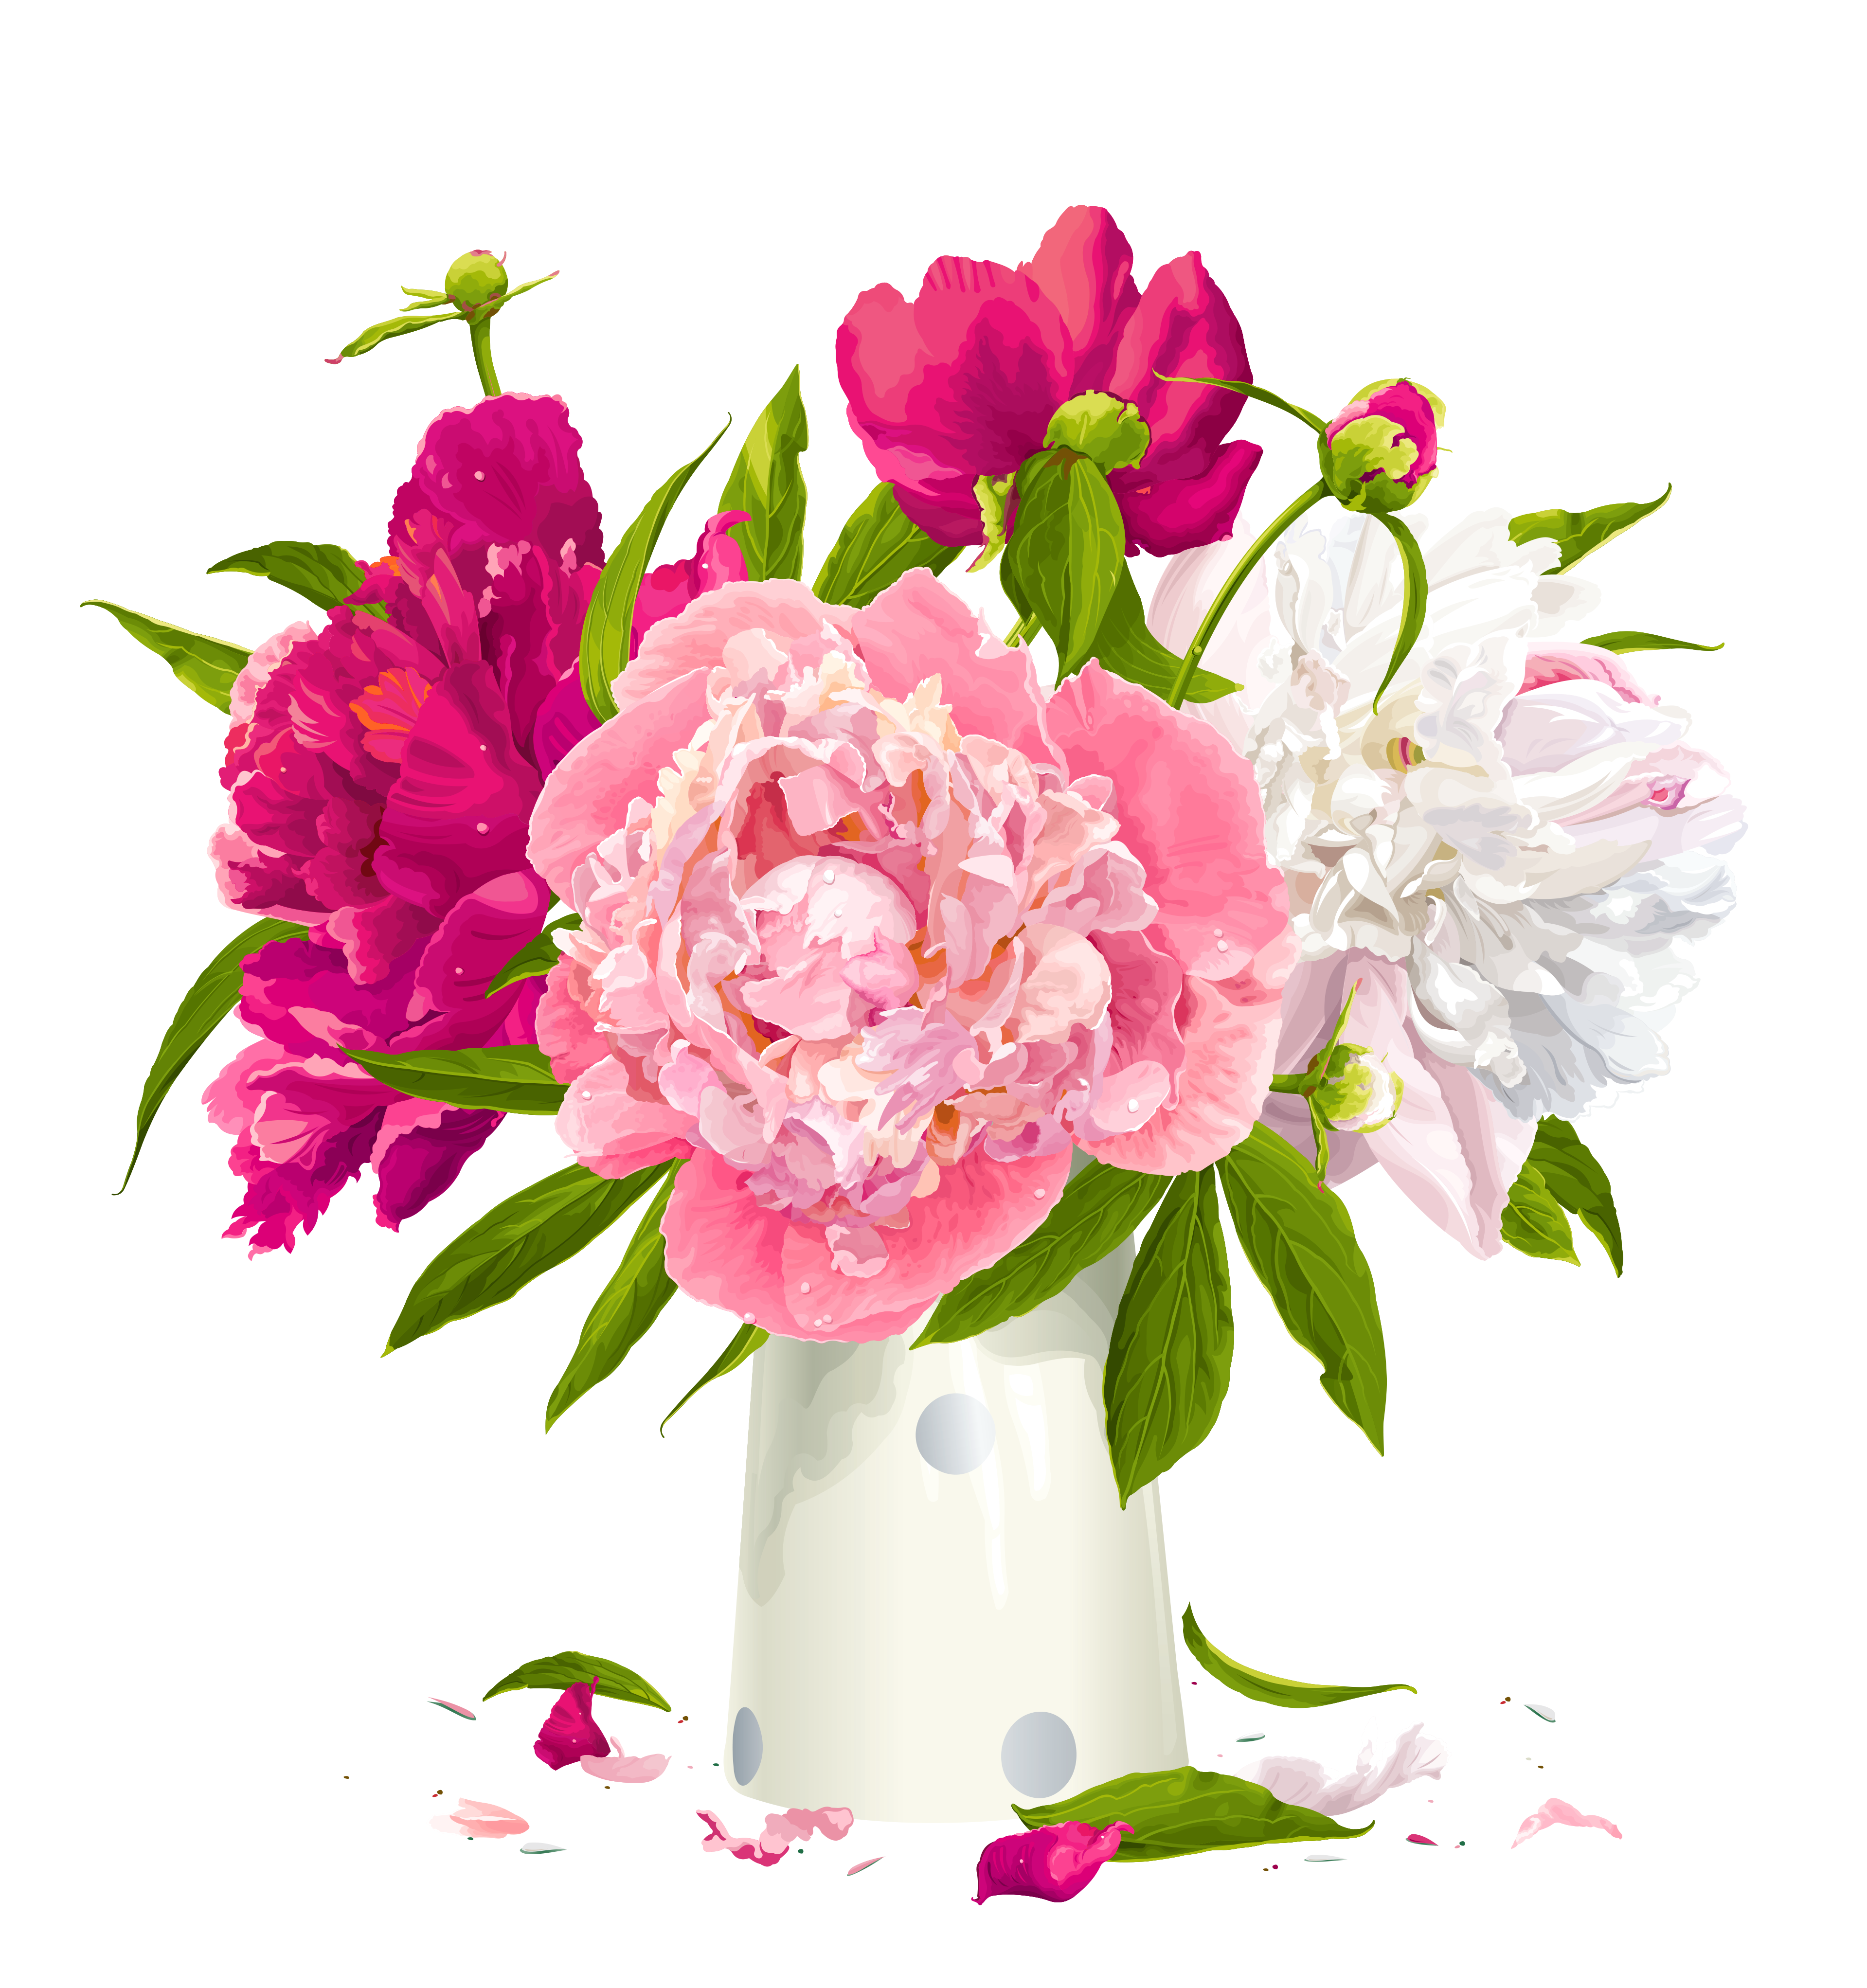 Peonies clipart graduation flower. Vase with gallery yopriceville